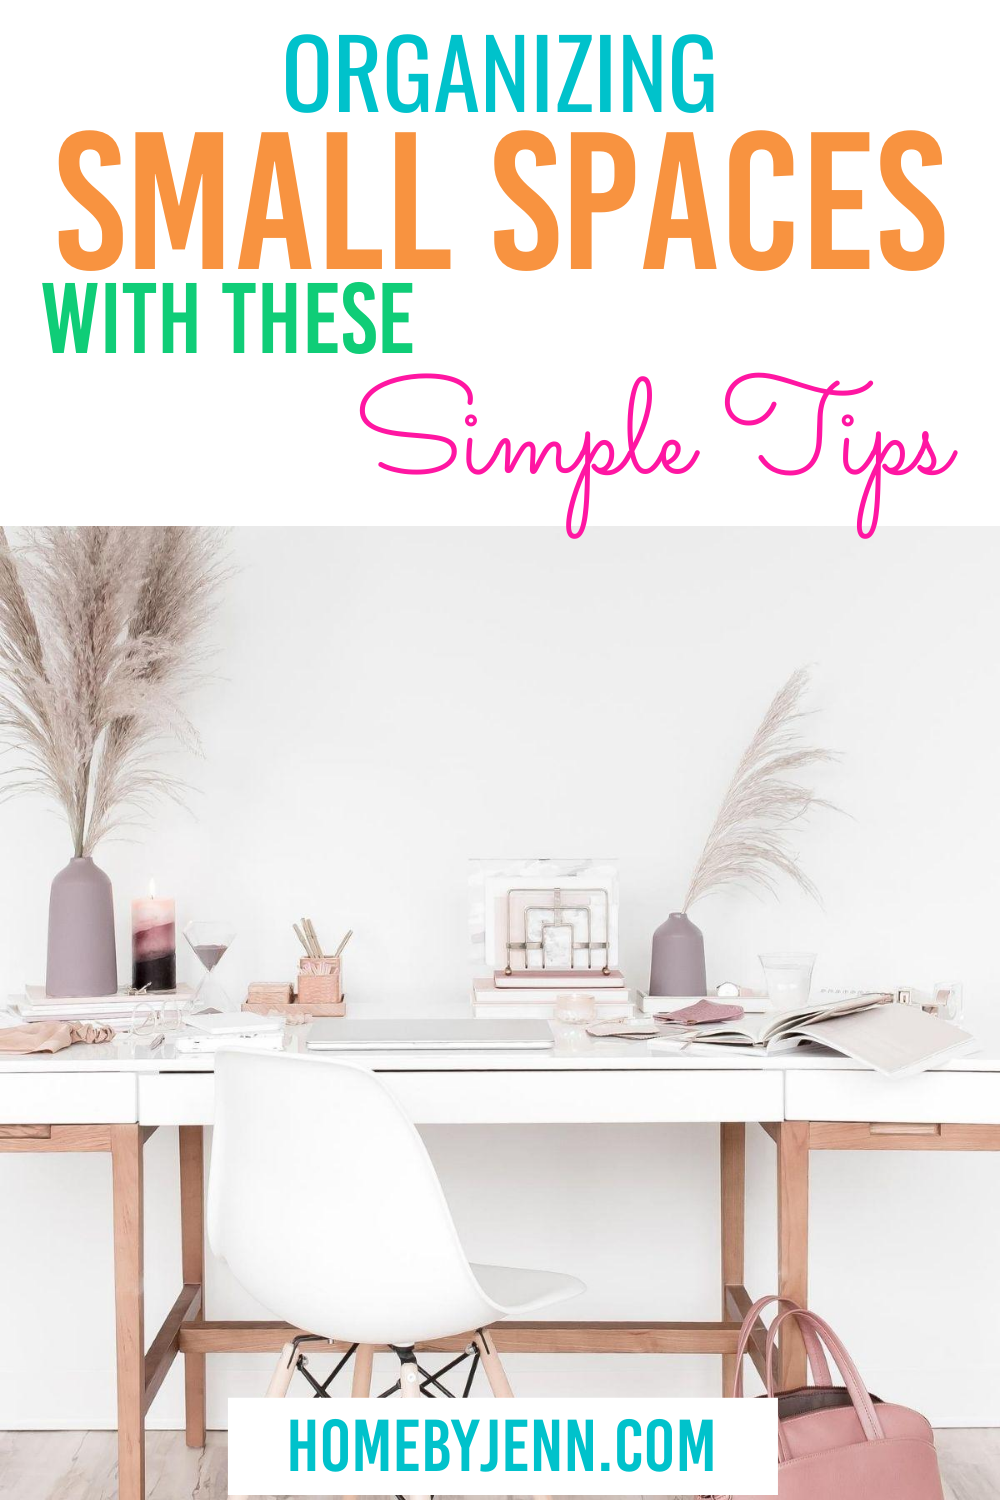 How to stay organized when you live in a small home. Here are some organizing ideas for small spaces. These home organizing hacks will help keep your home organized with ease. #organizing #homeorganization #organizingsmallspaces #organizeasmallhouse #organizinghacks #organizingtipsandtricks via @homebyjenn